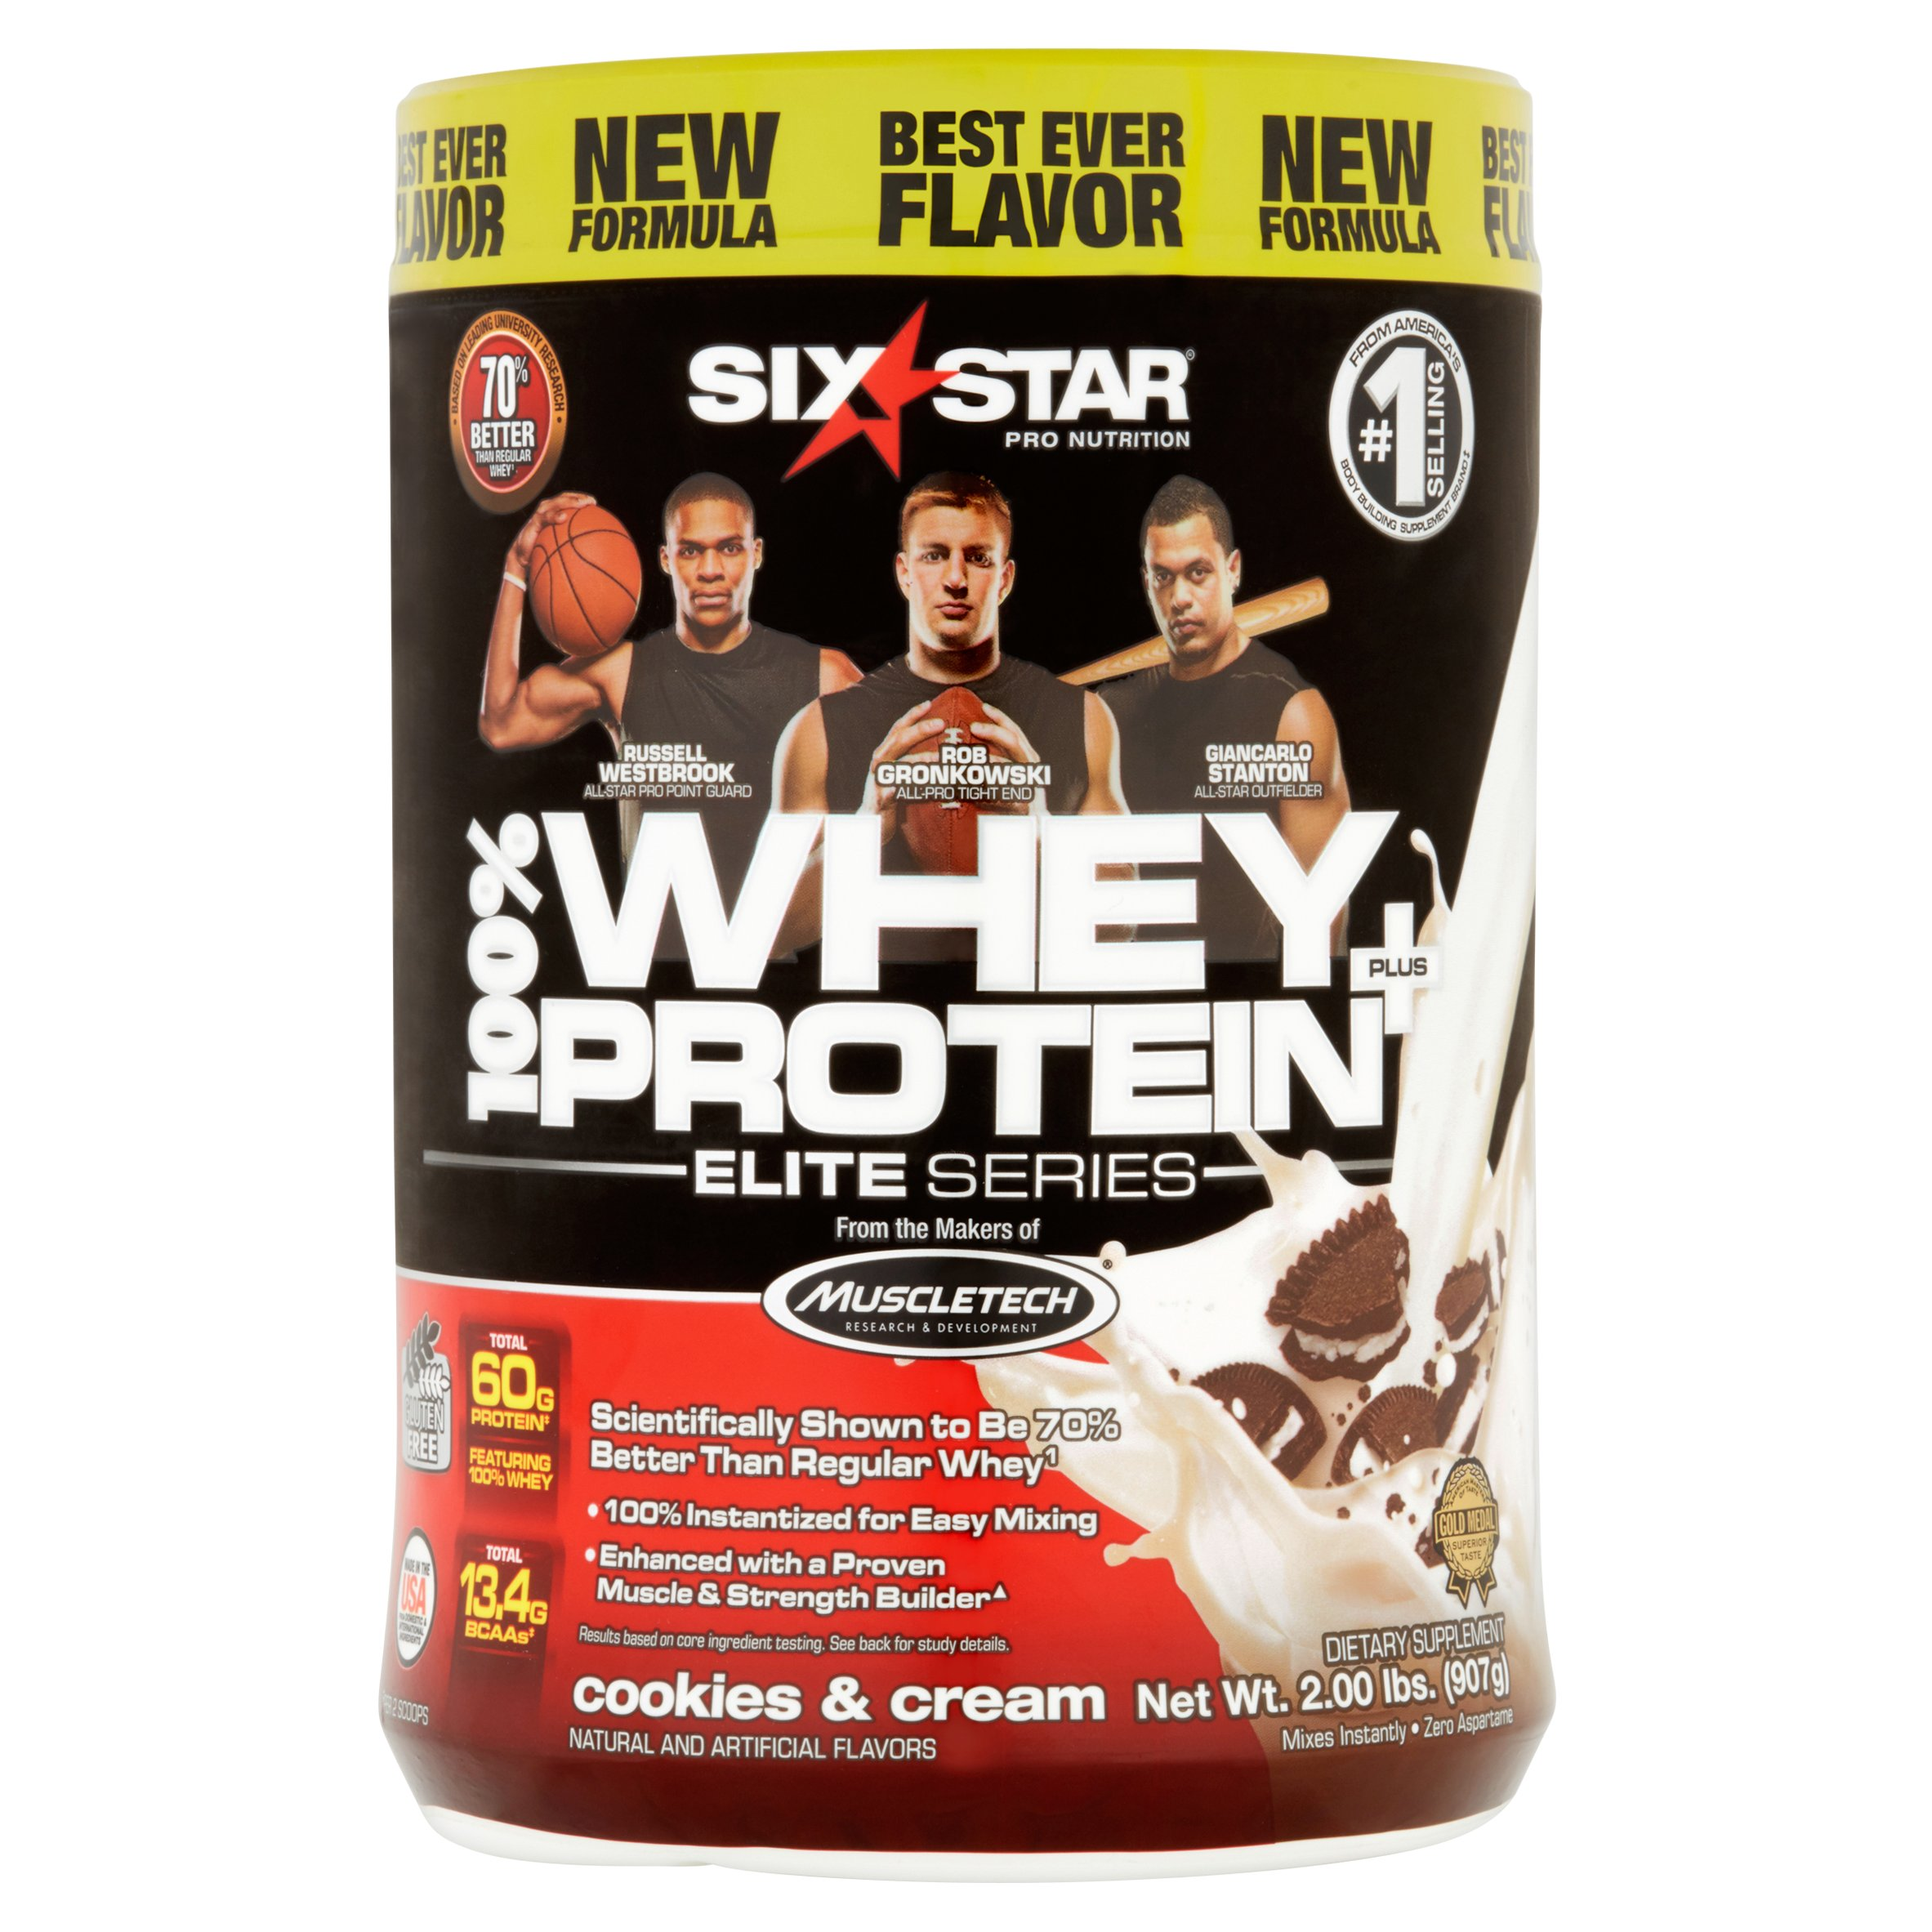 Six Star Pro Nutrition Elite Series 100% Whey Protein Powder, Cookies & Cream, 20g Protein, 2 Lb